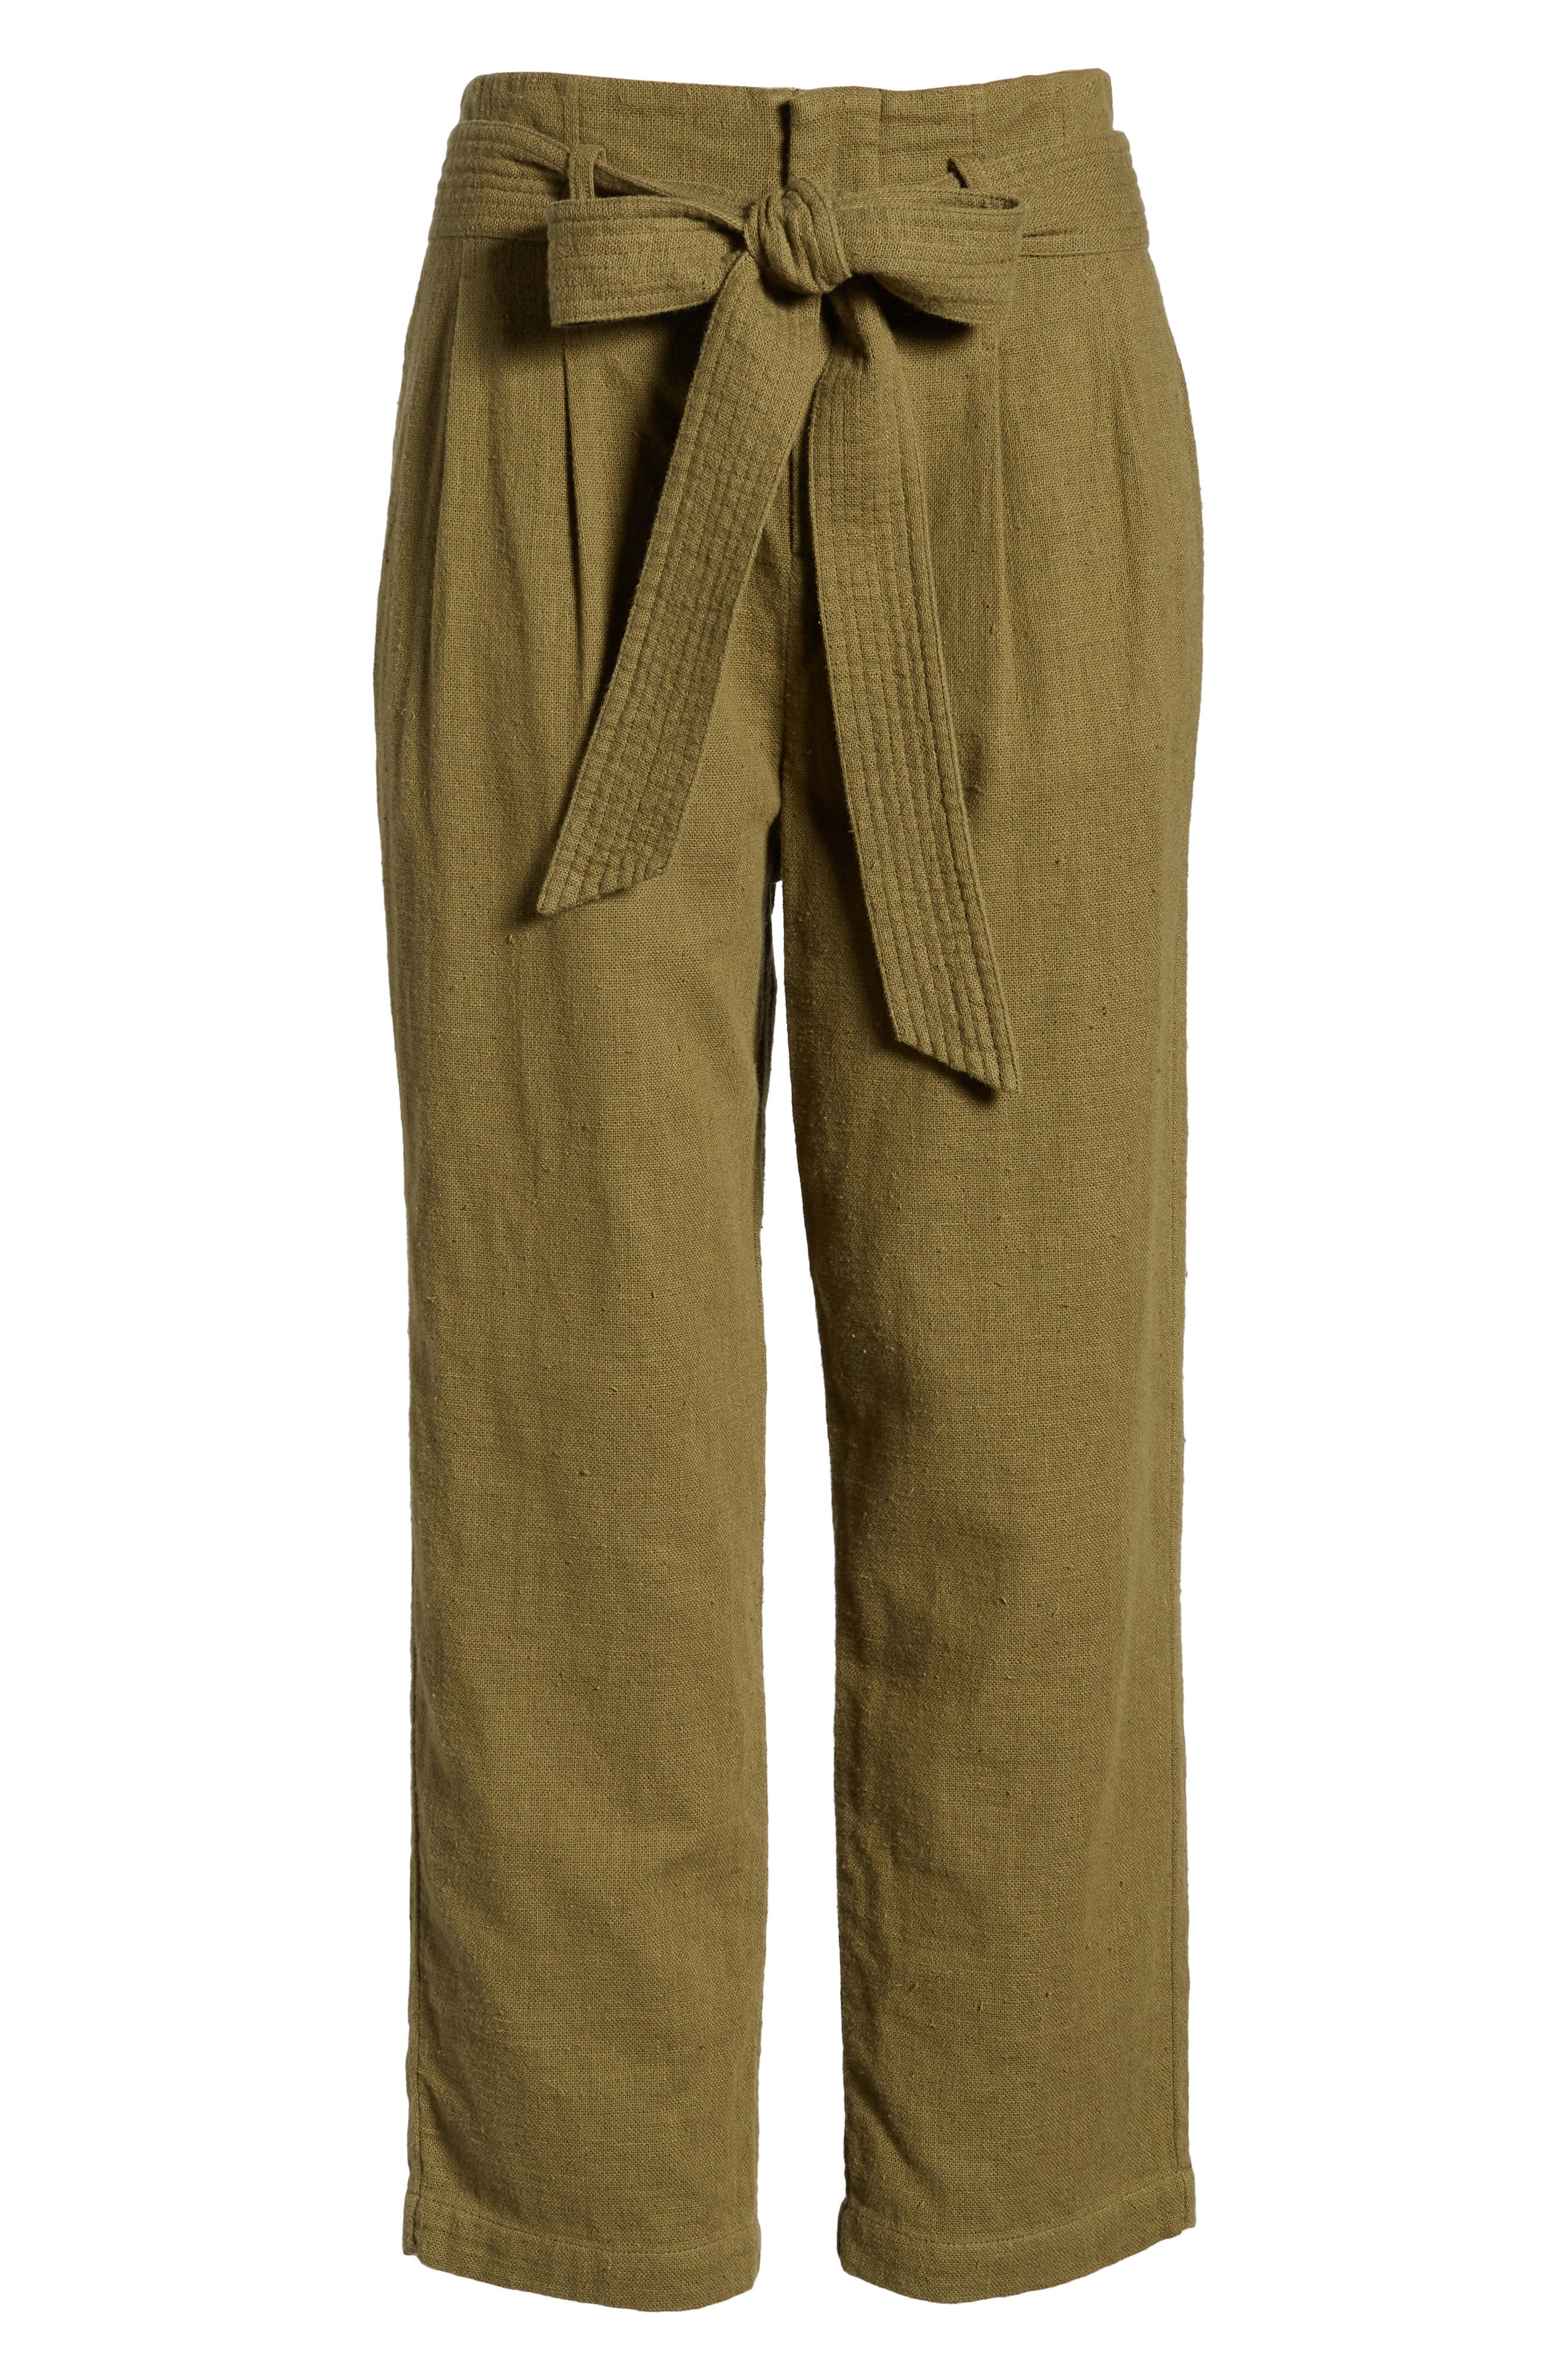 Darena Pants,                             Alternate thumbnail 6, color,                             OLIVE GROVE